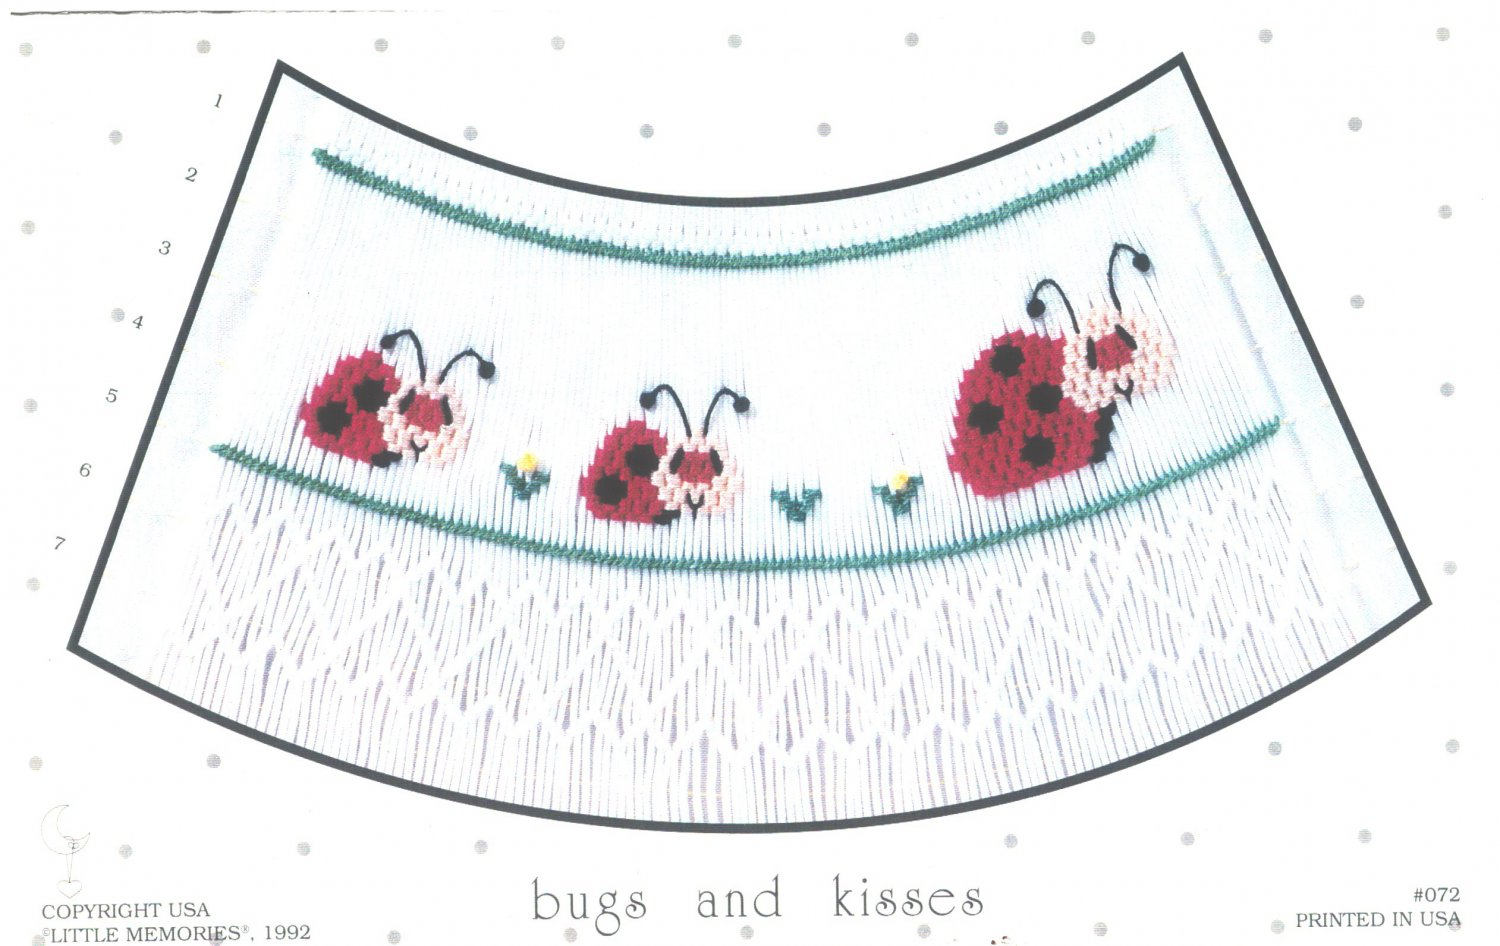 Bugs and Kisses Little Memories Smocking Plate Lady Bugs #072 Sewing Smocking design